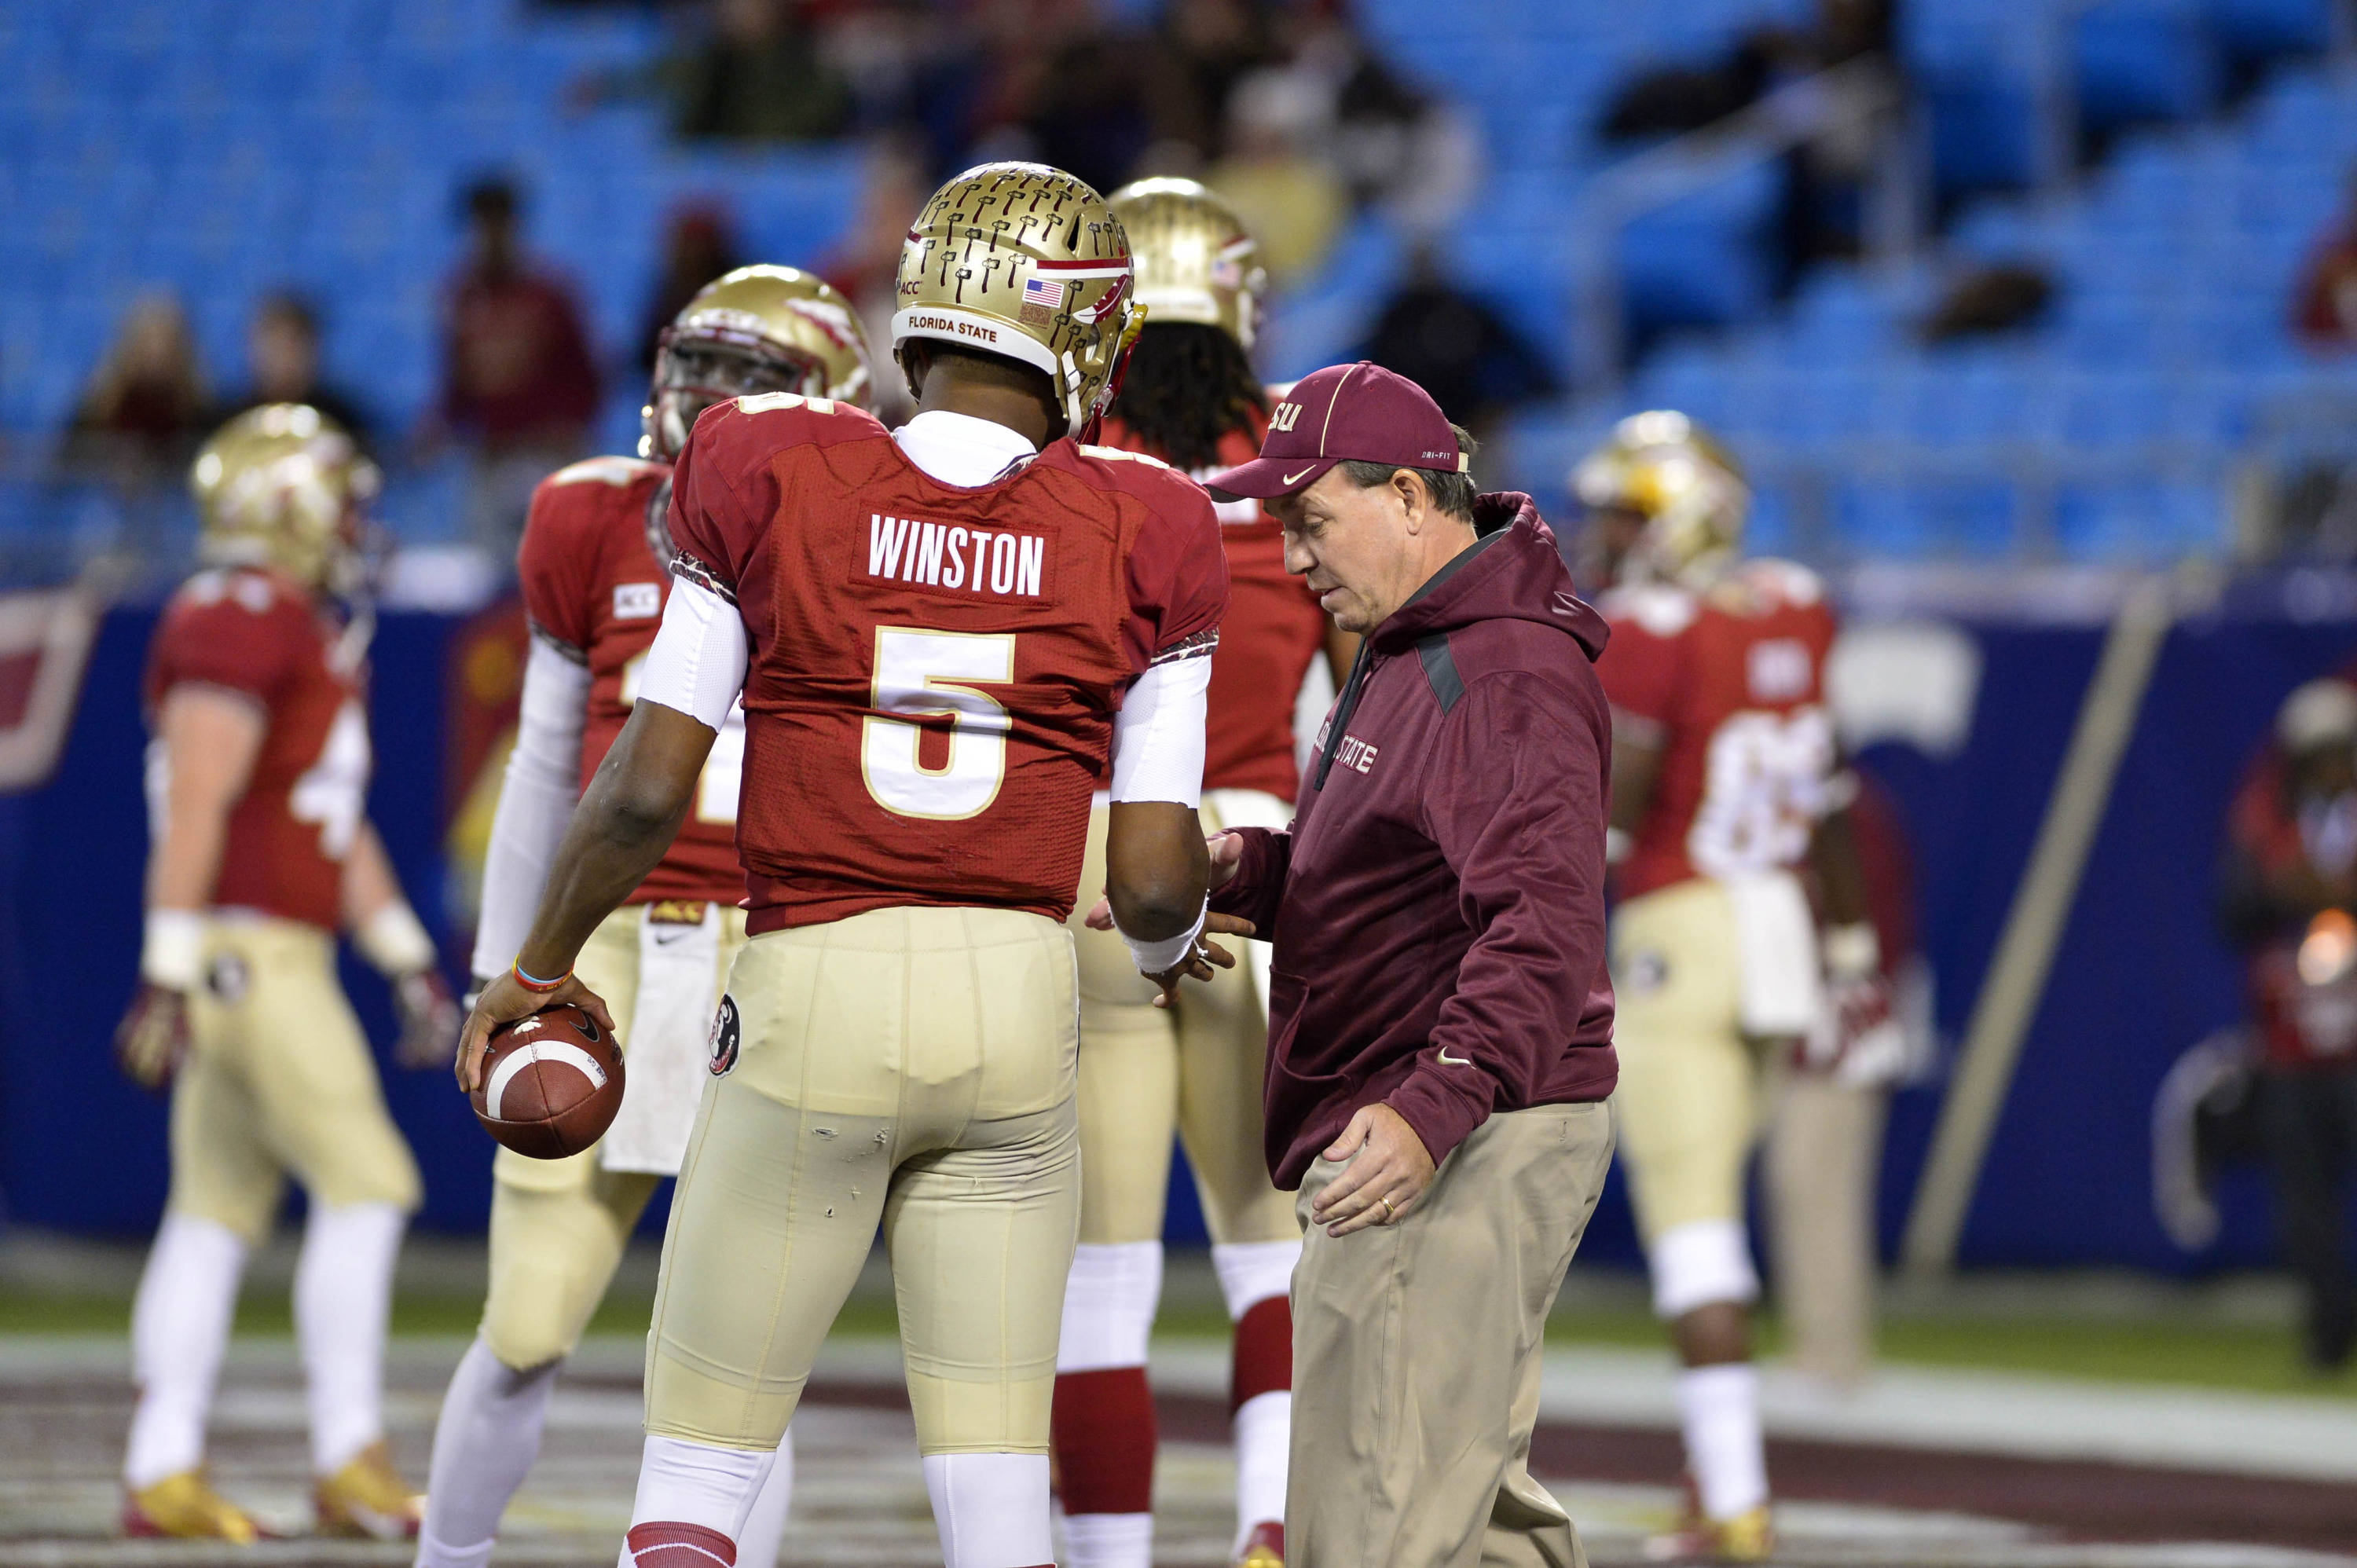 Dec 7, 2013; Charlotte, NC, USA; Florida State Seminoles head coach Jimbo Fisher shakes quarterback Jameis Winston (5) before the game at Bank of America Stadium. Mandatory Credit: Bob Donnan-USA TODAY Sports